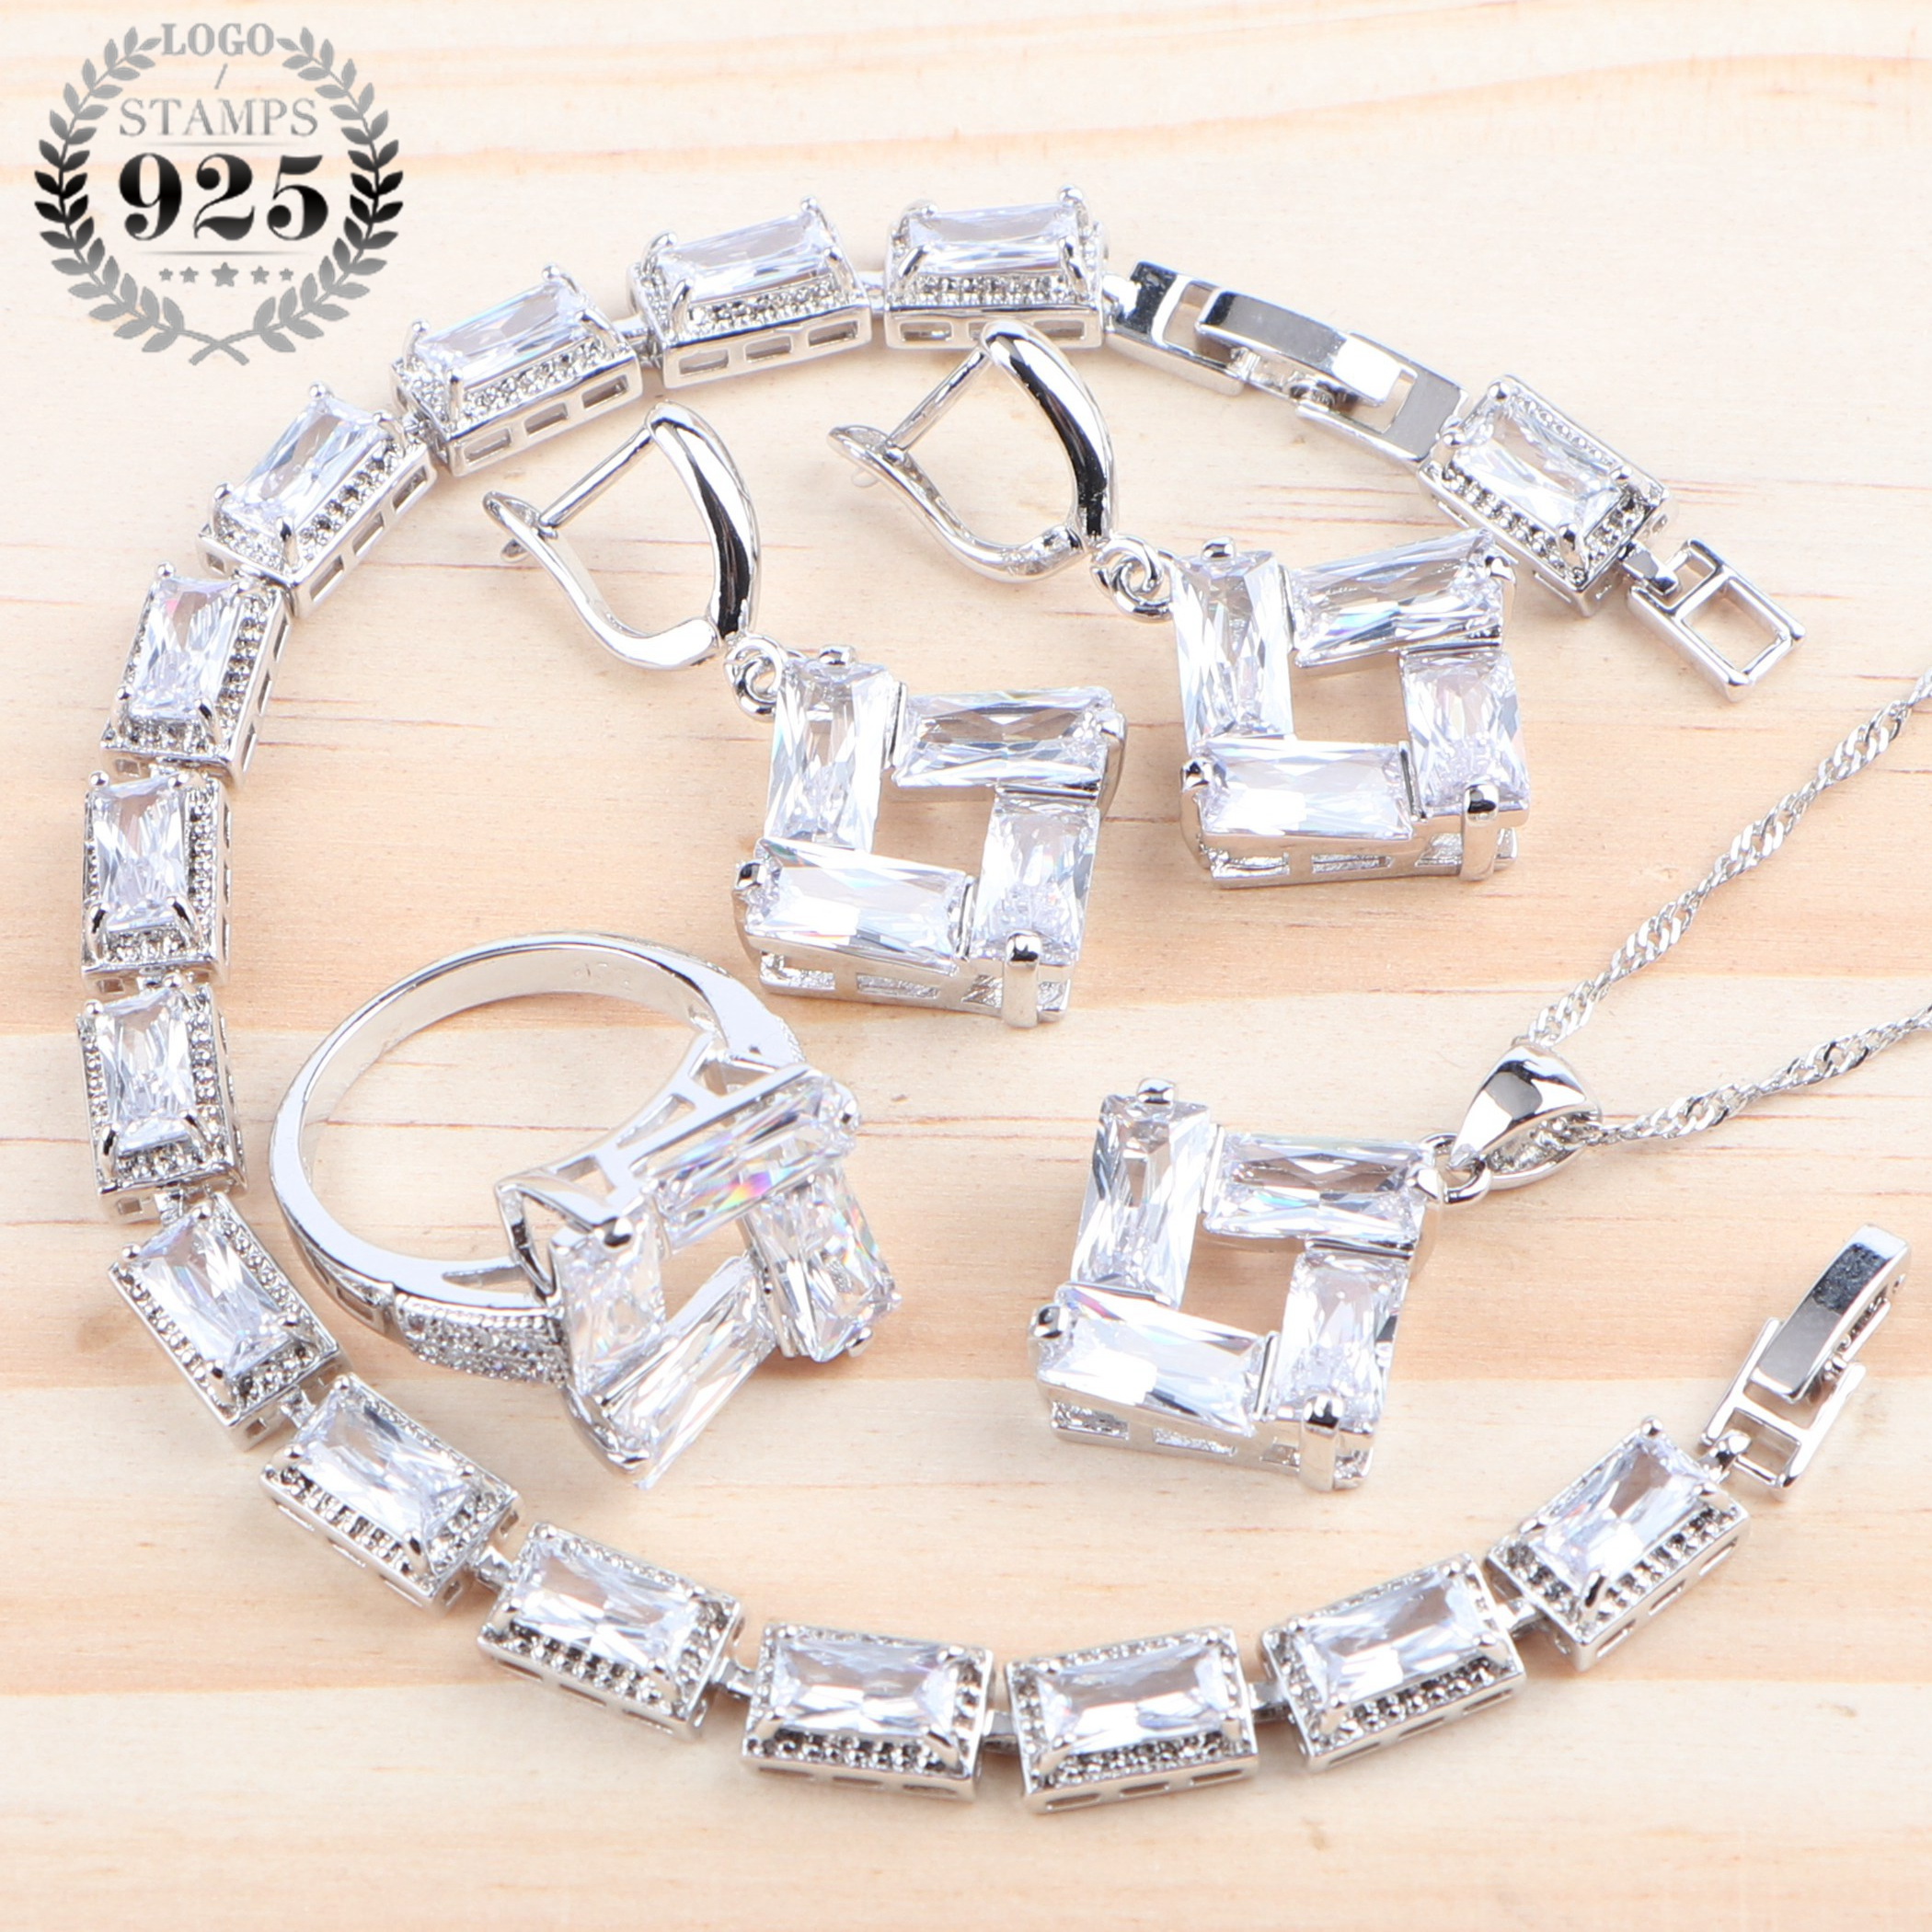 Wedding Cubic Zirconia Women Luxury Jewelry Sets 925 Sterling Silver White Ring Bracelet Earrings Pendant Necklace Set Gifts Box